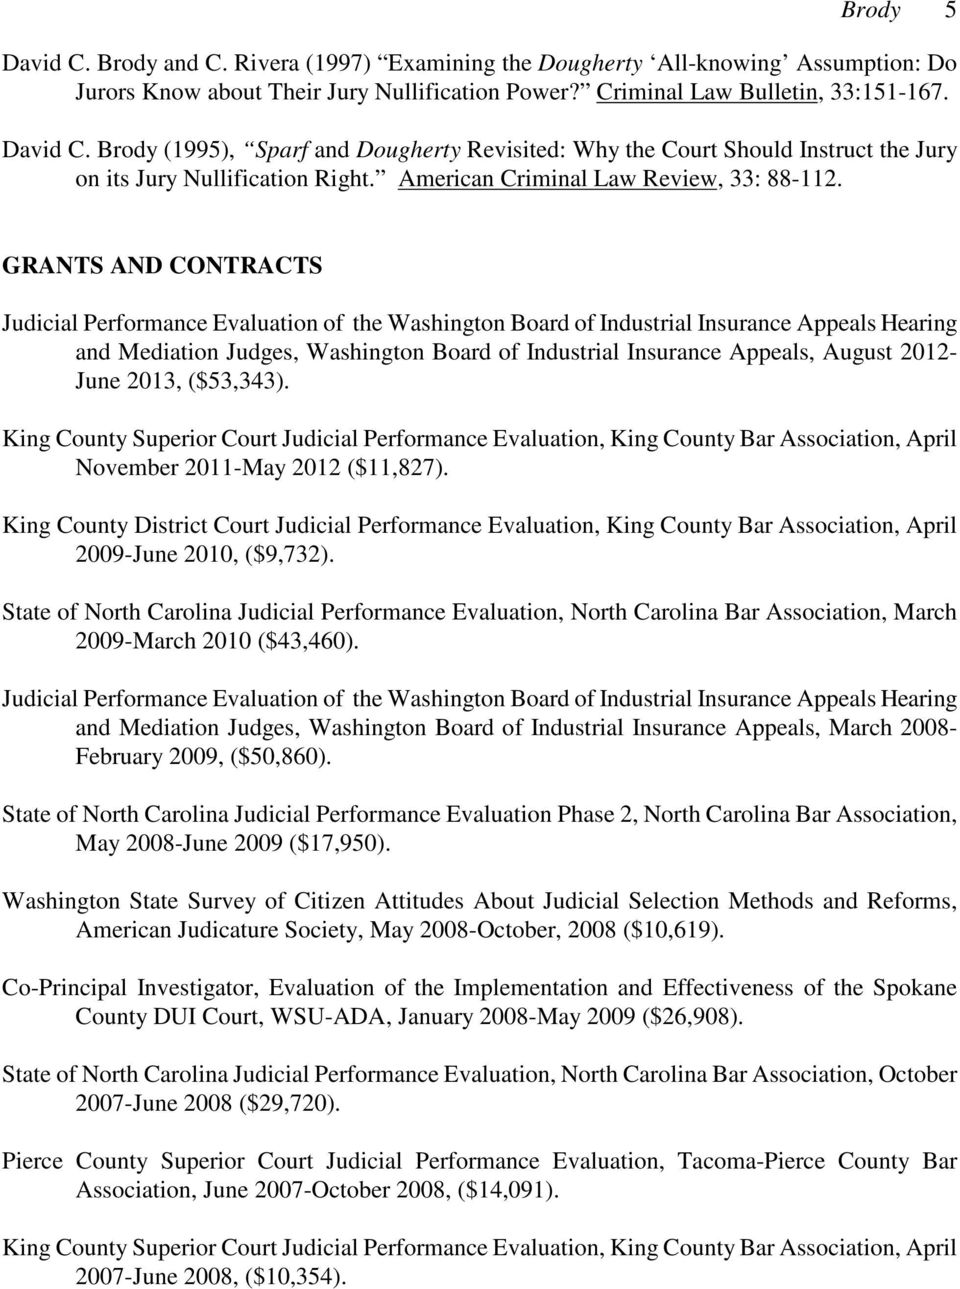 GRANTS AND CONTRACTS Judicial Performance Evaluation of the Washington Board of Industrial Insurance Appeals Hearing and Mediation Judges, Washington Board of Industrial Insurance Appeals, August